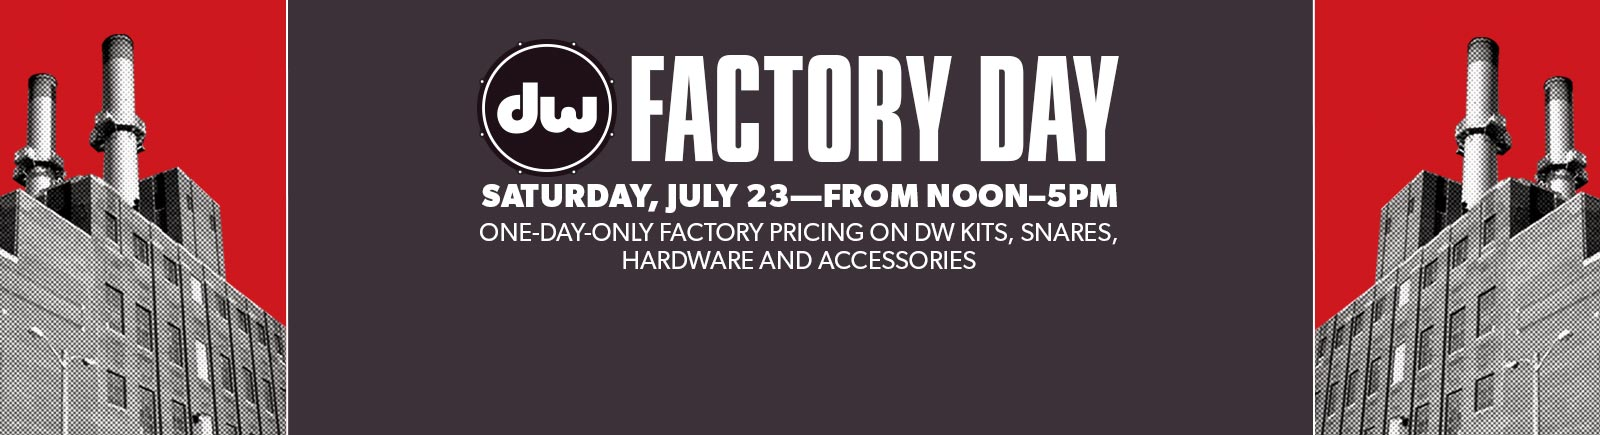 DW Factory Day